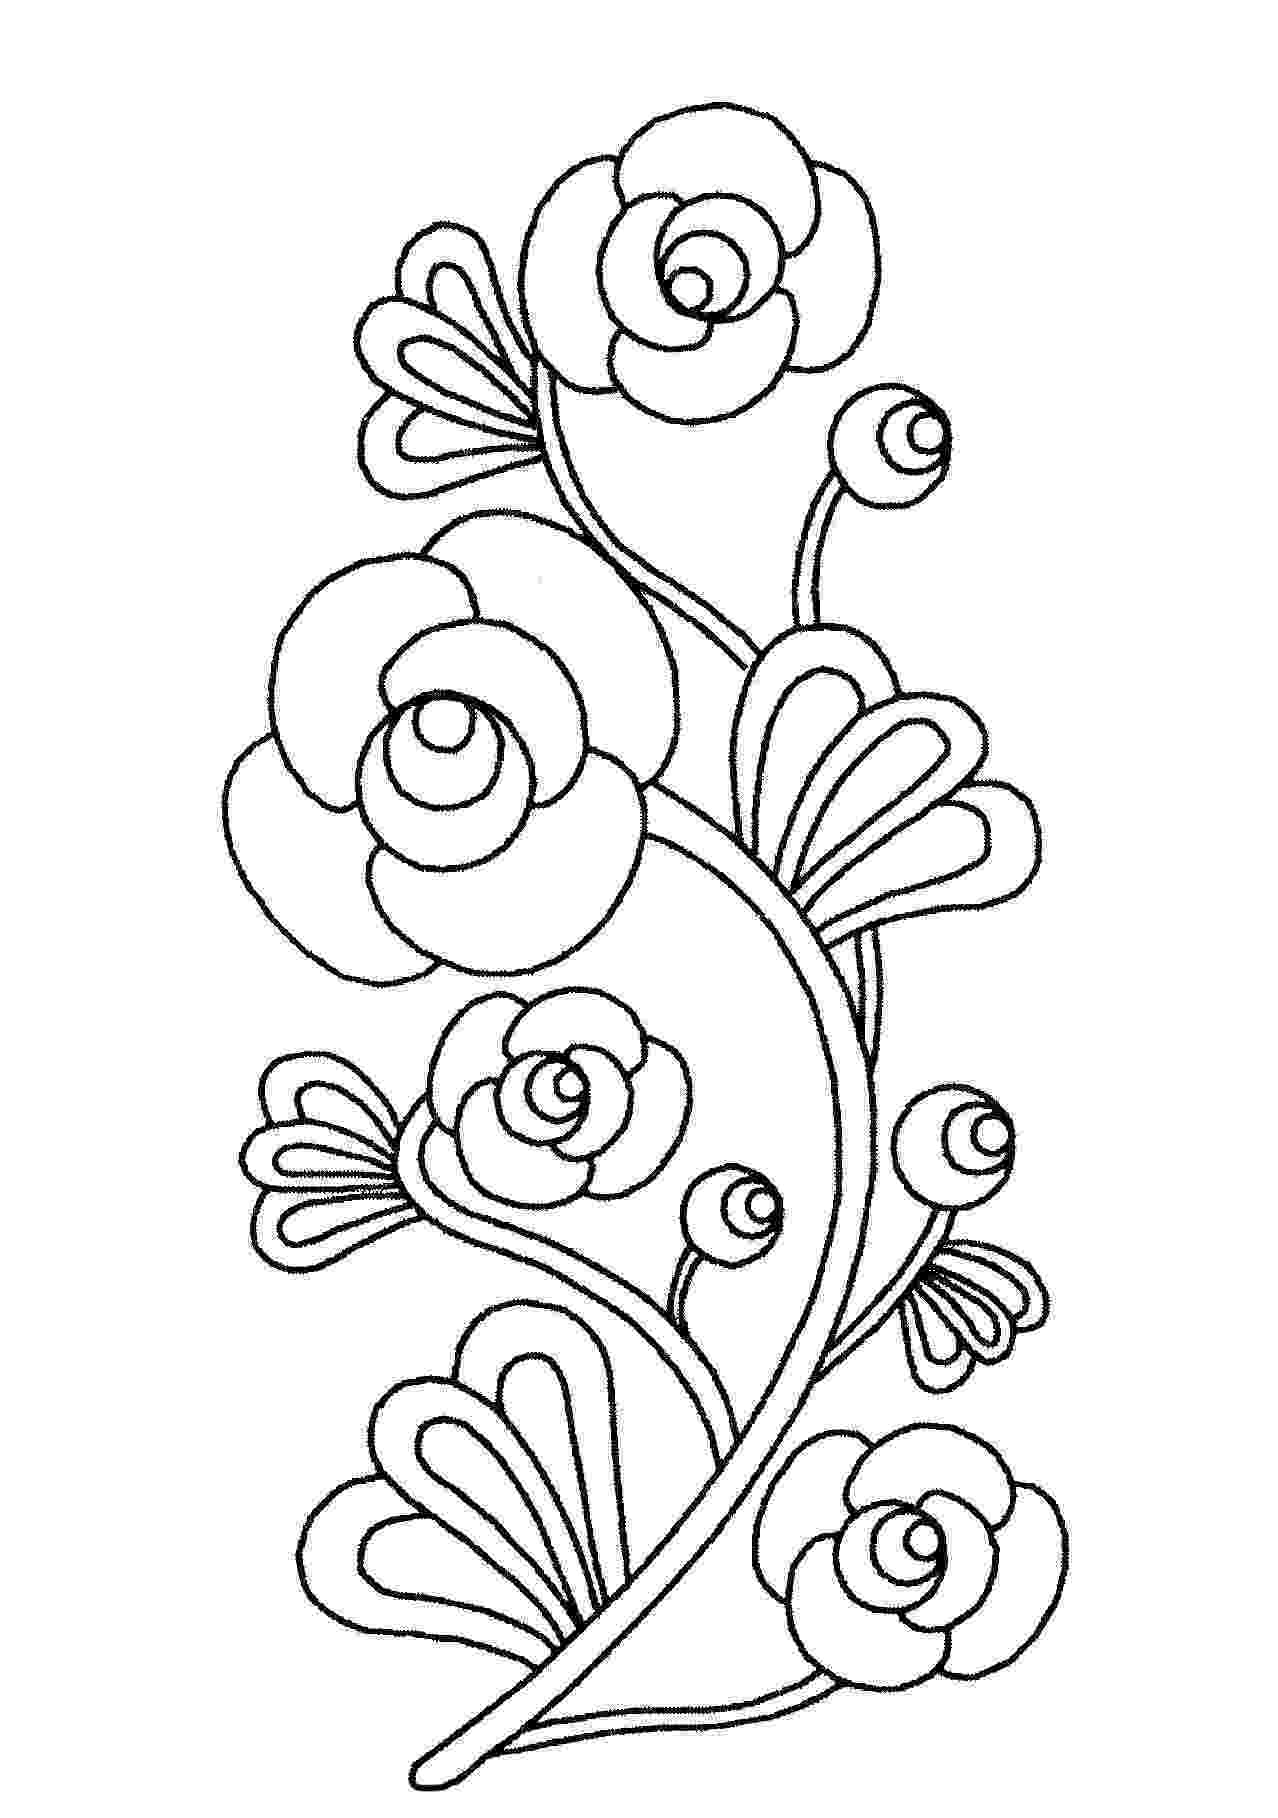 pictures of flowers to print and color soccer wallpaper flower coloring pages color of flowers to and pictures print